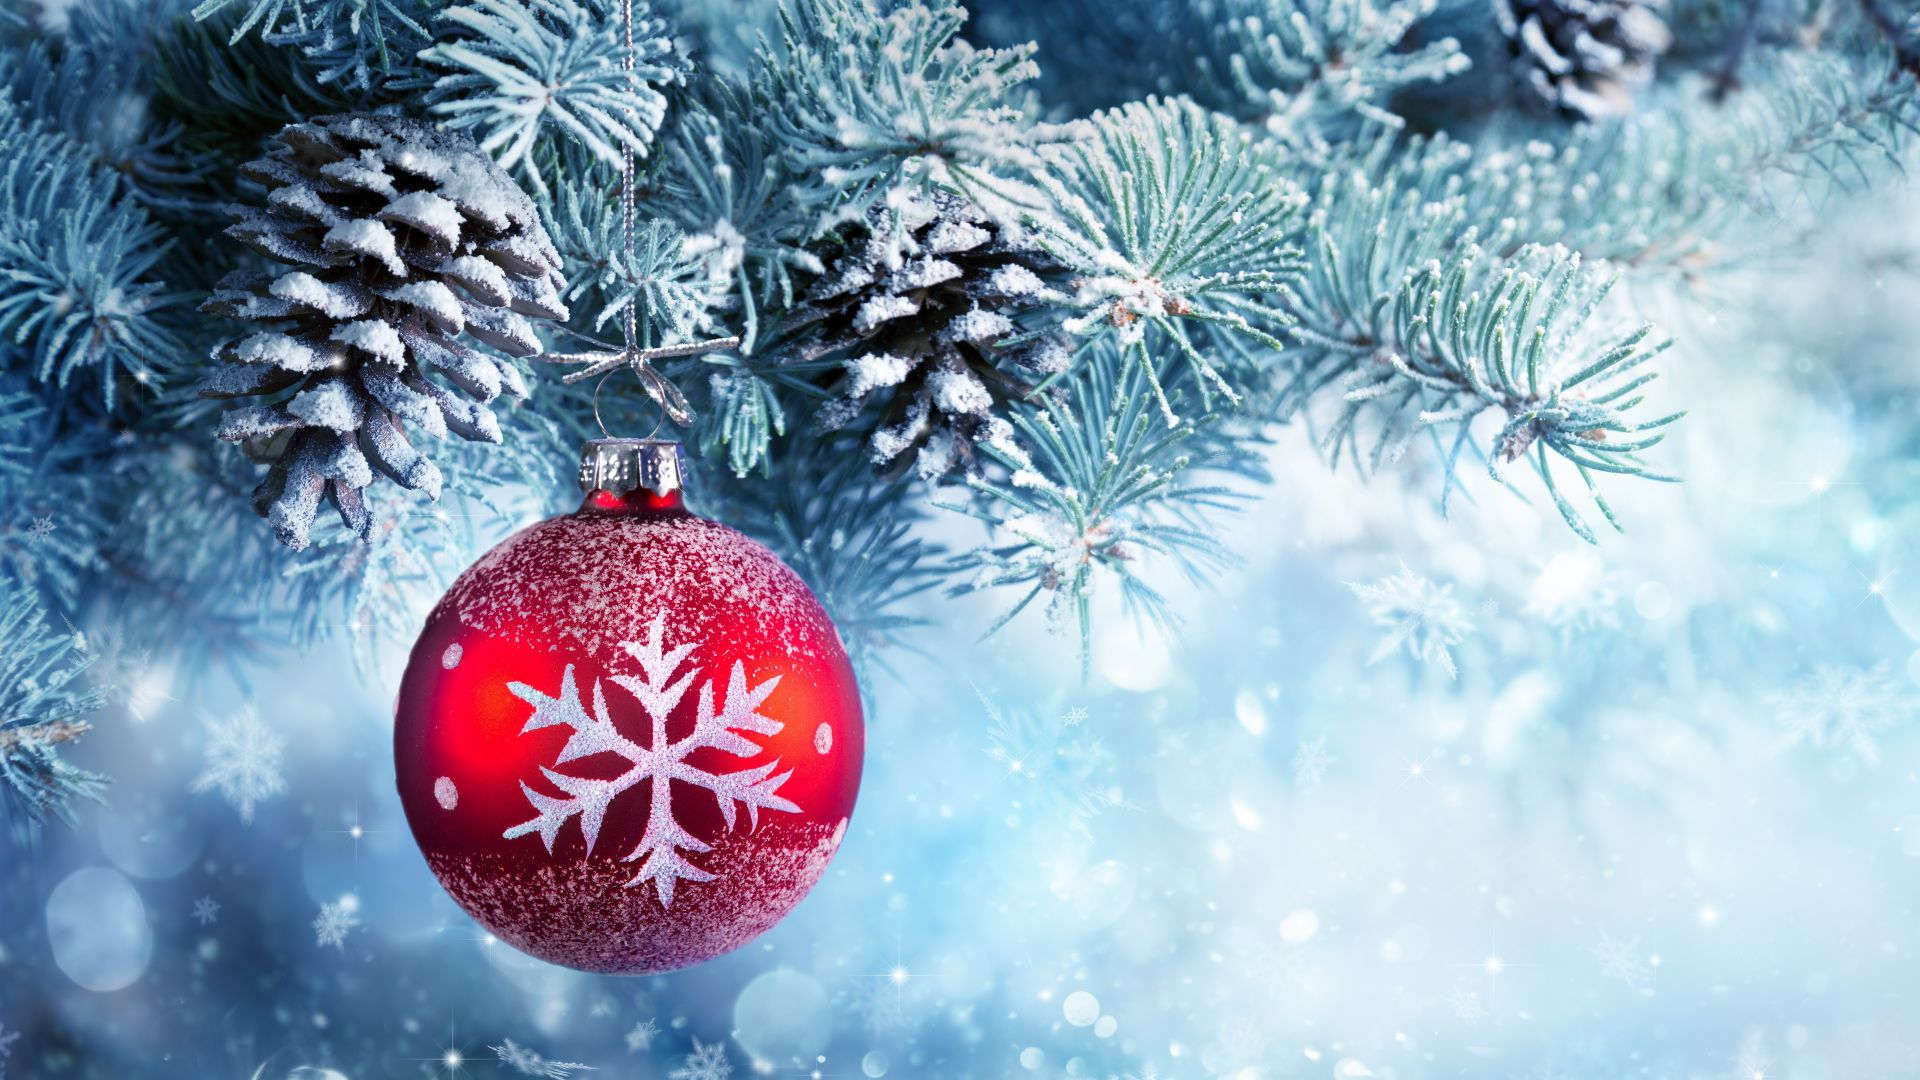 Winter Christmas Ball Wallpaper 1080p